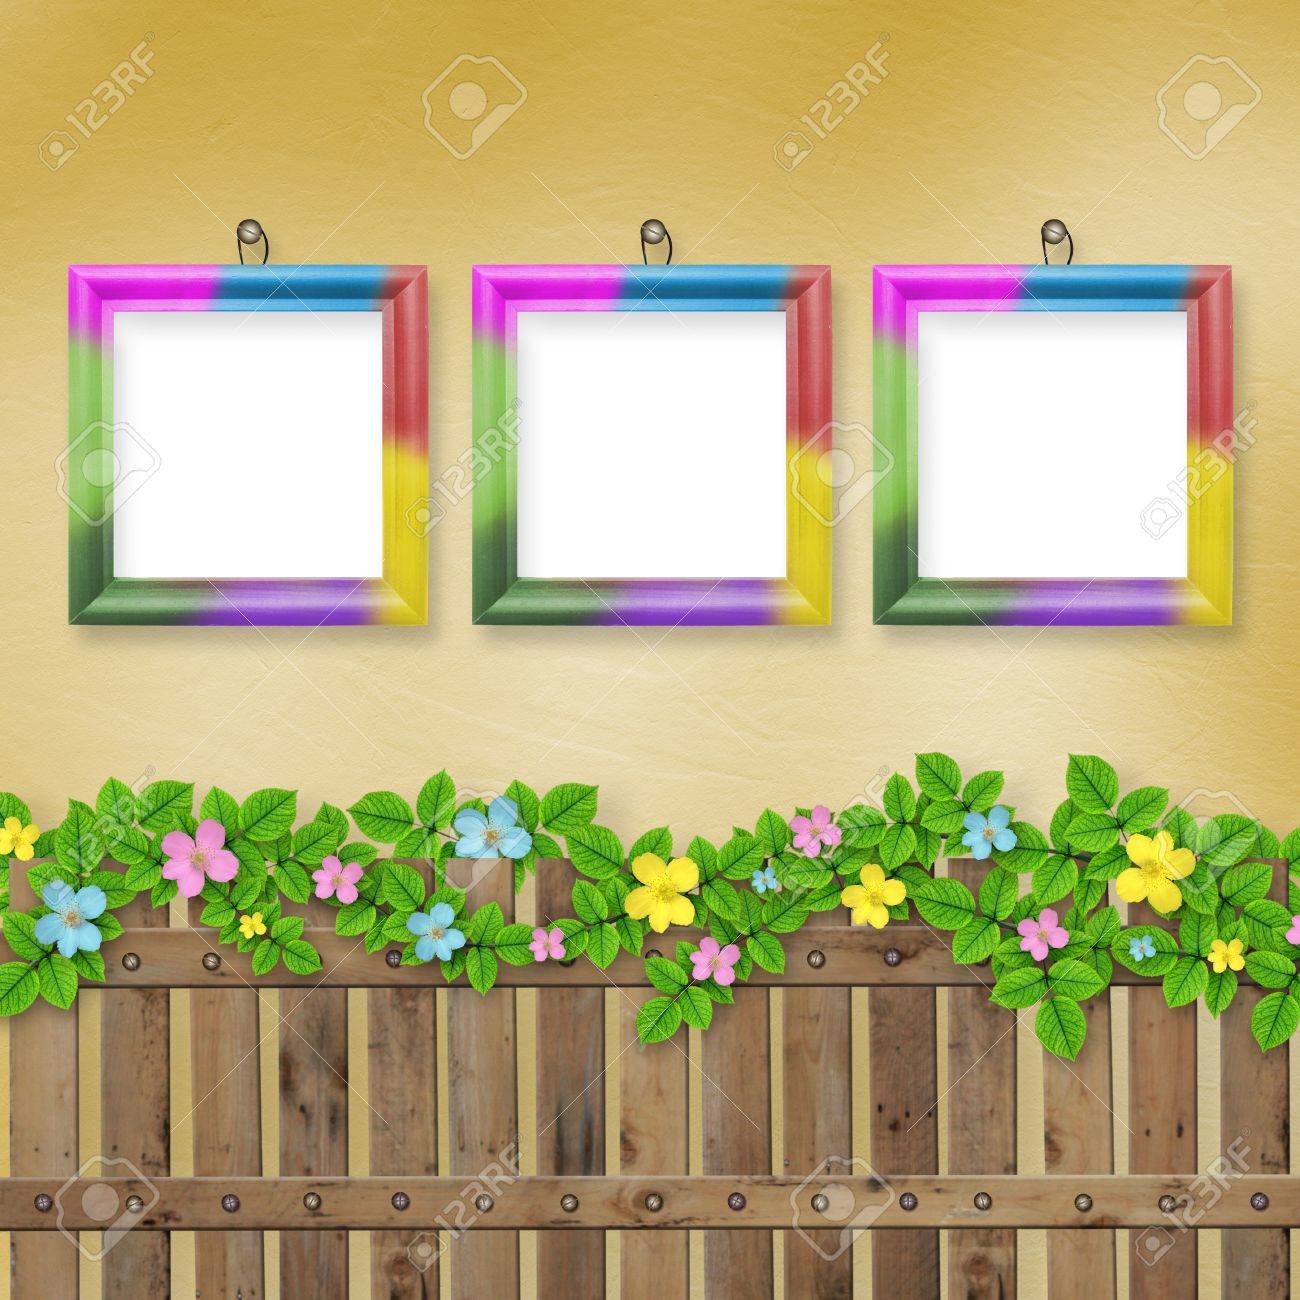 Wooden fence with a flower garland on the abstract background of a summer day Stock Photo - 12664648